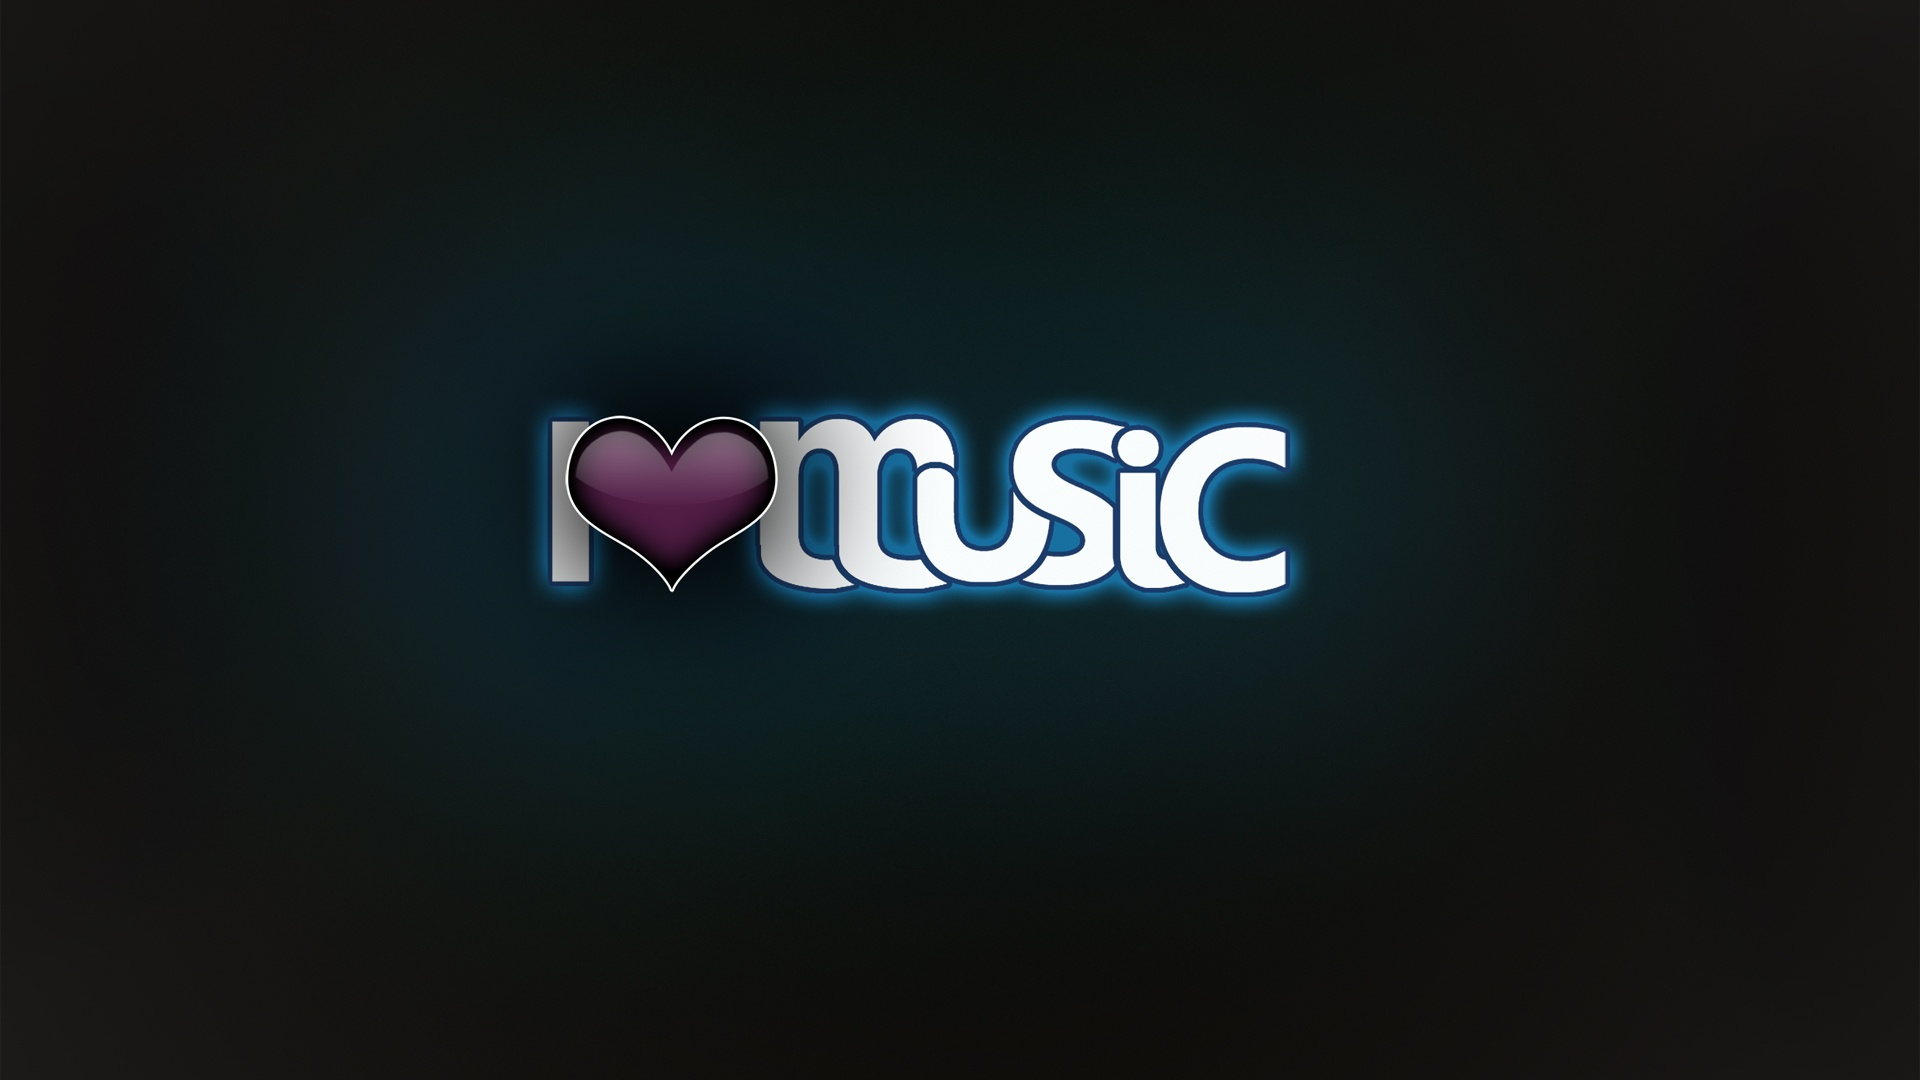 Love Wallpapers Songs : I love music - High Definition Wallpapers - HD wallpapers